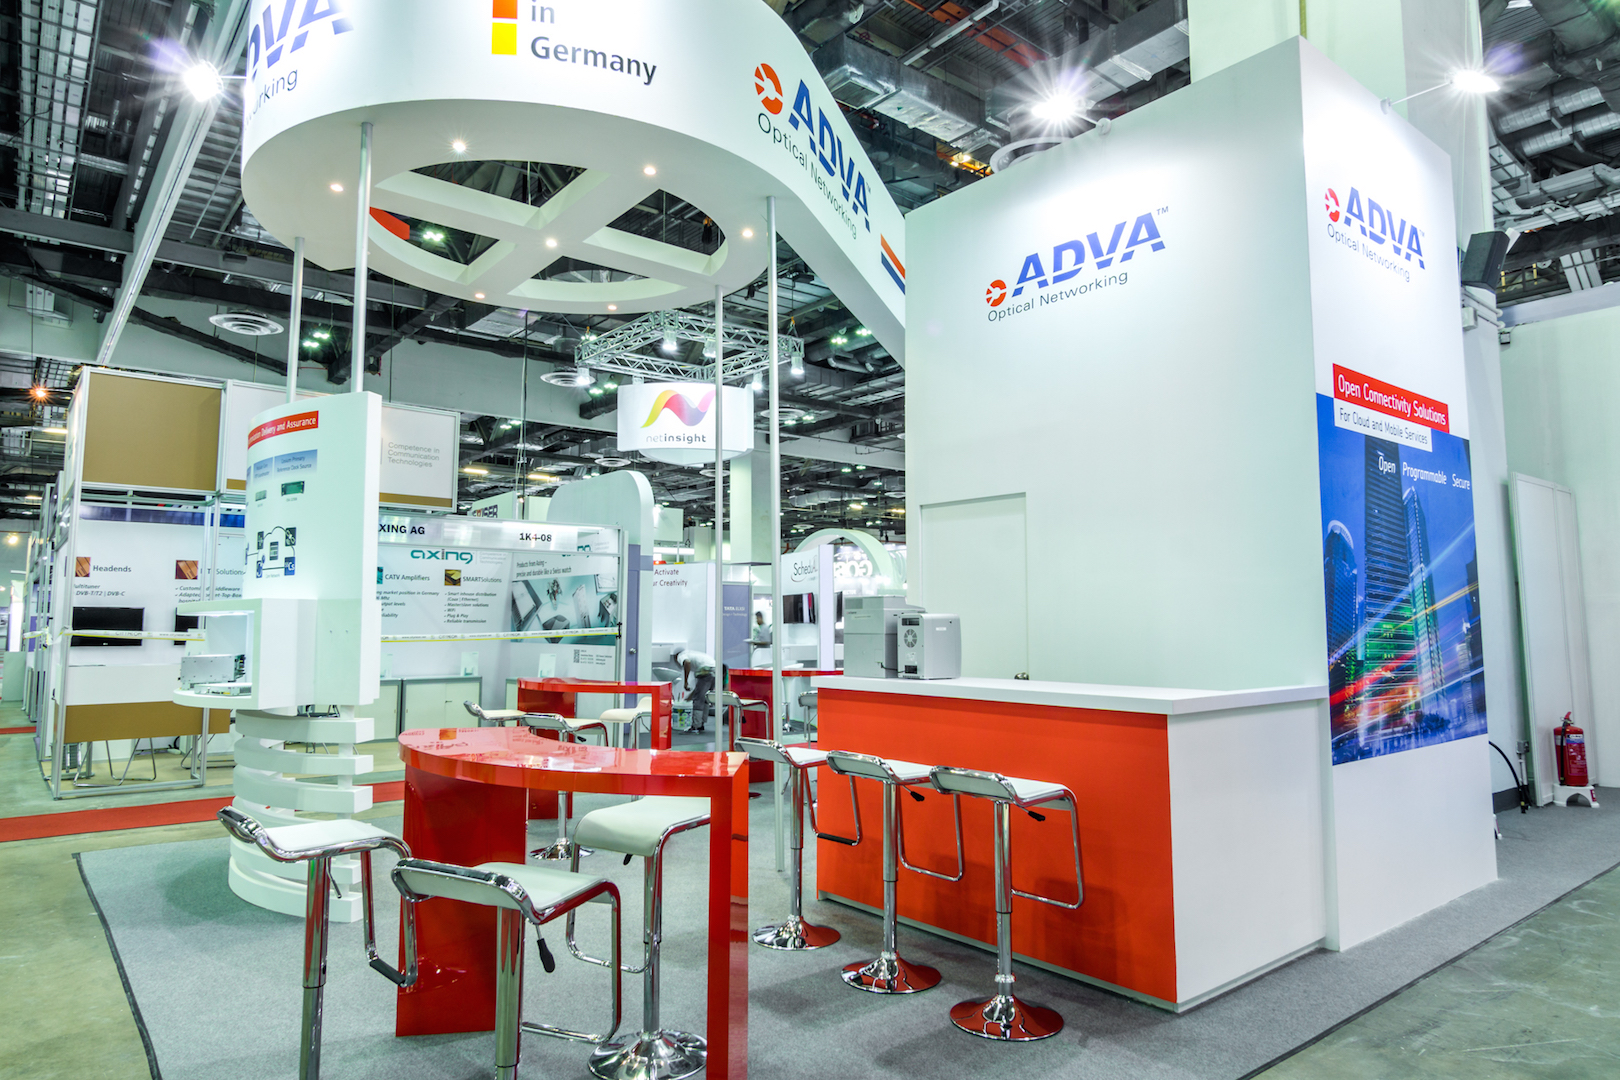 Exhibition Booth Design Singapore : Adva optical exhibition booth punktlandung events